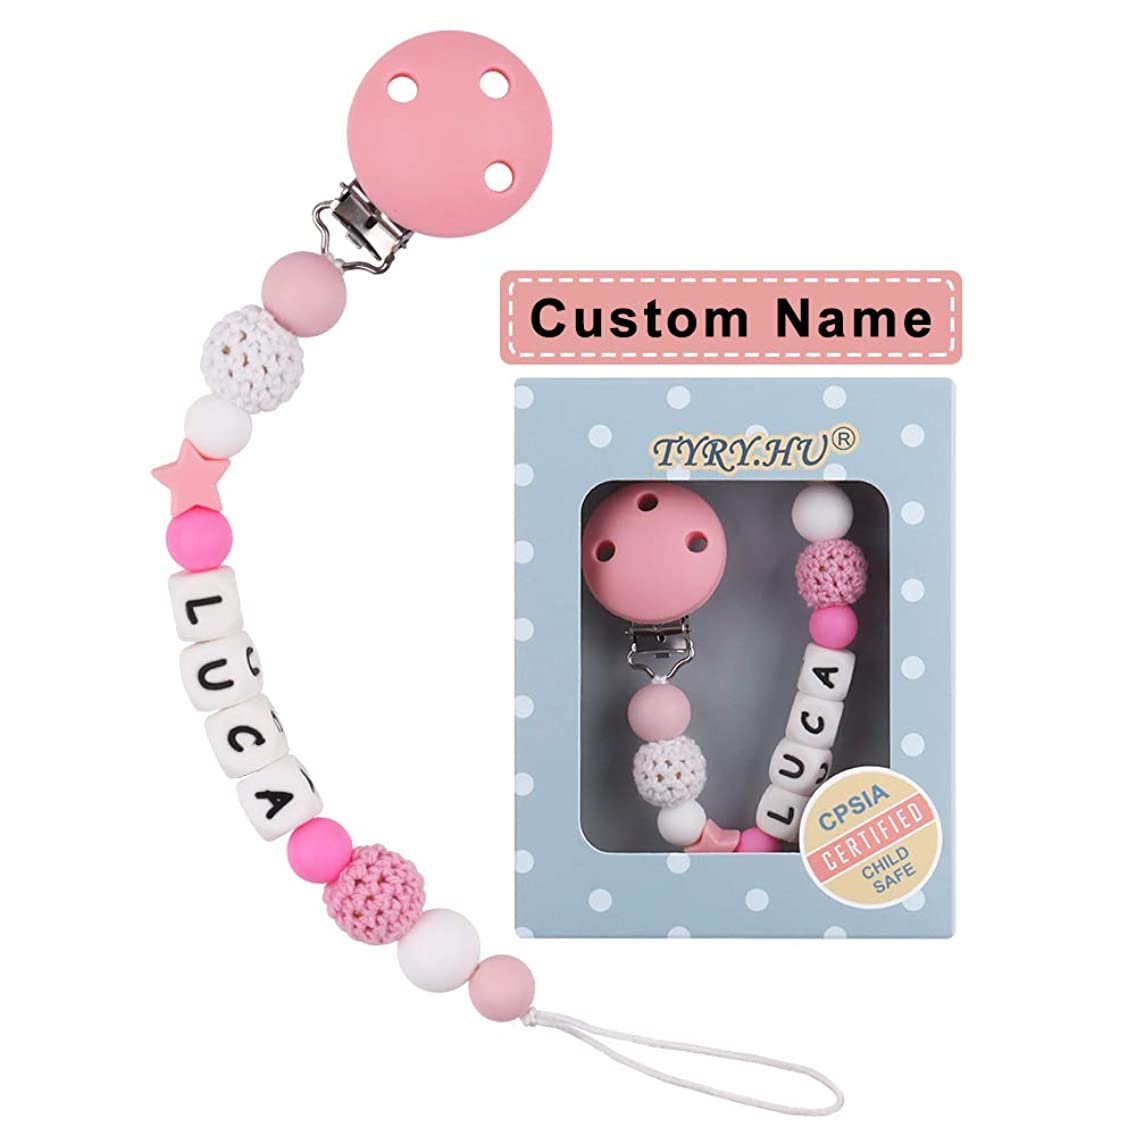 Personalized Pacifier Clips, TYRY.HU BPA Free Silicone Teething Beads Binky Teether Holder for Baby Girl Name Shower Gift(Pink)